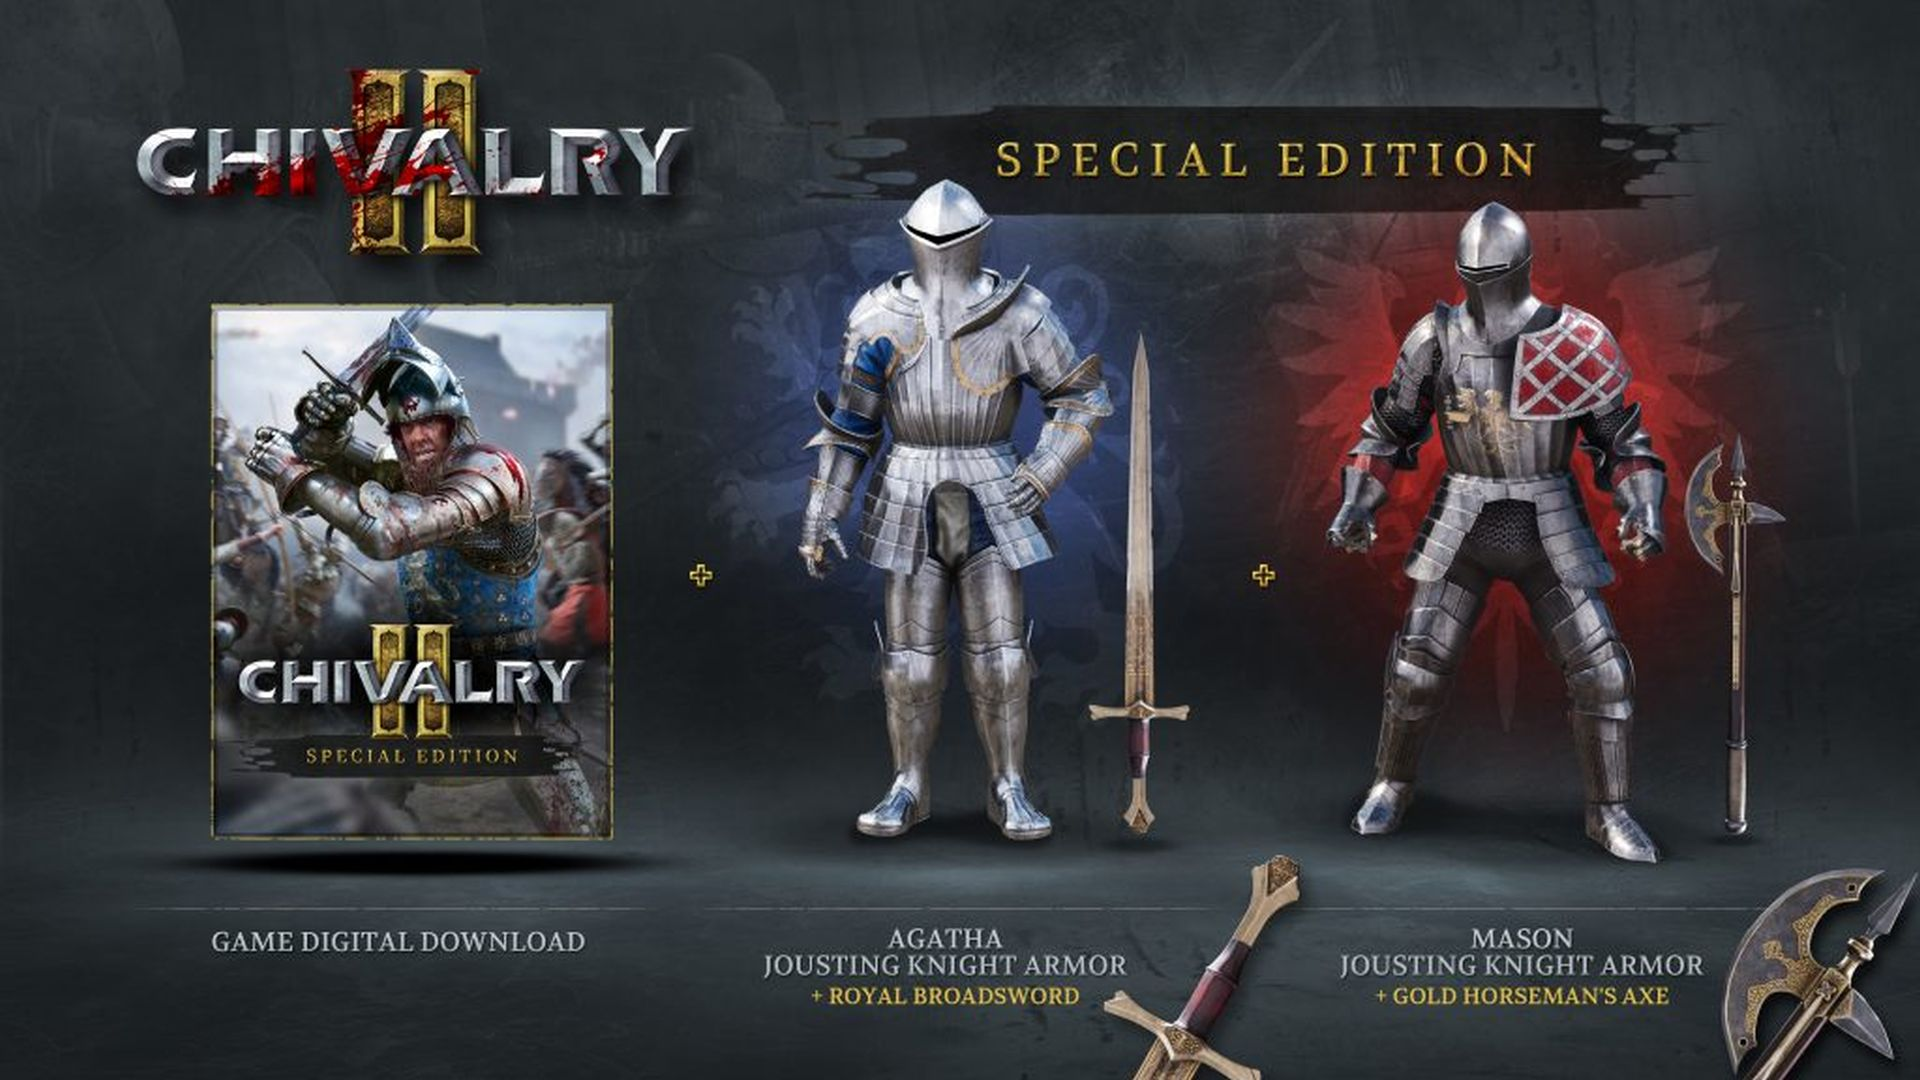 0yg0 chivalry 2 special edition min